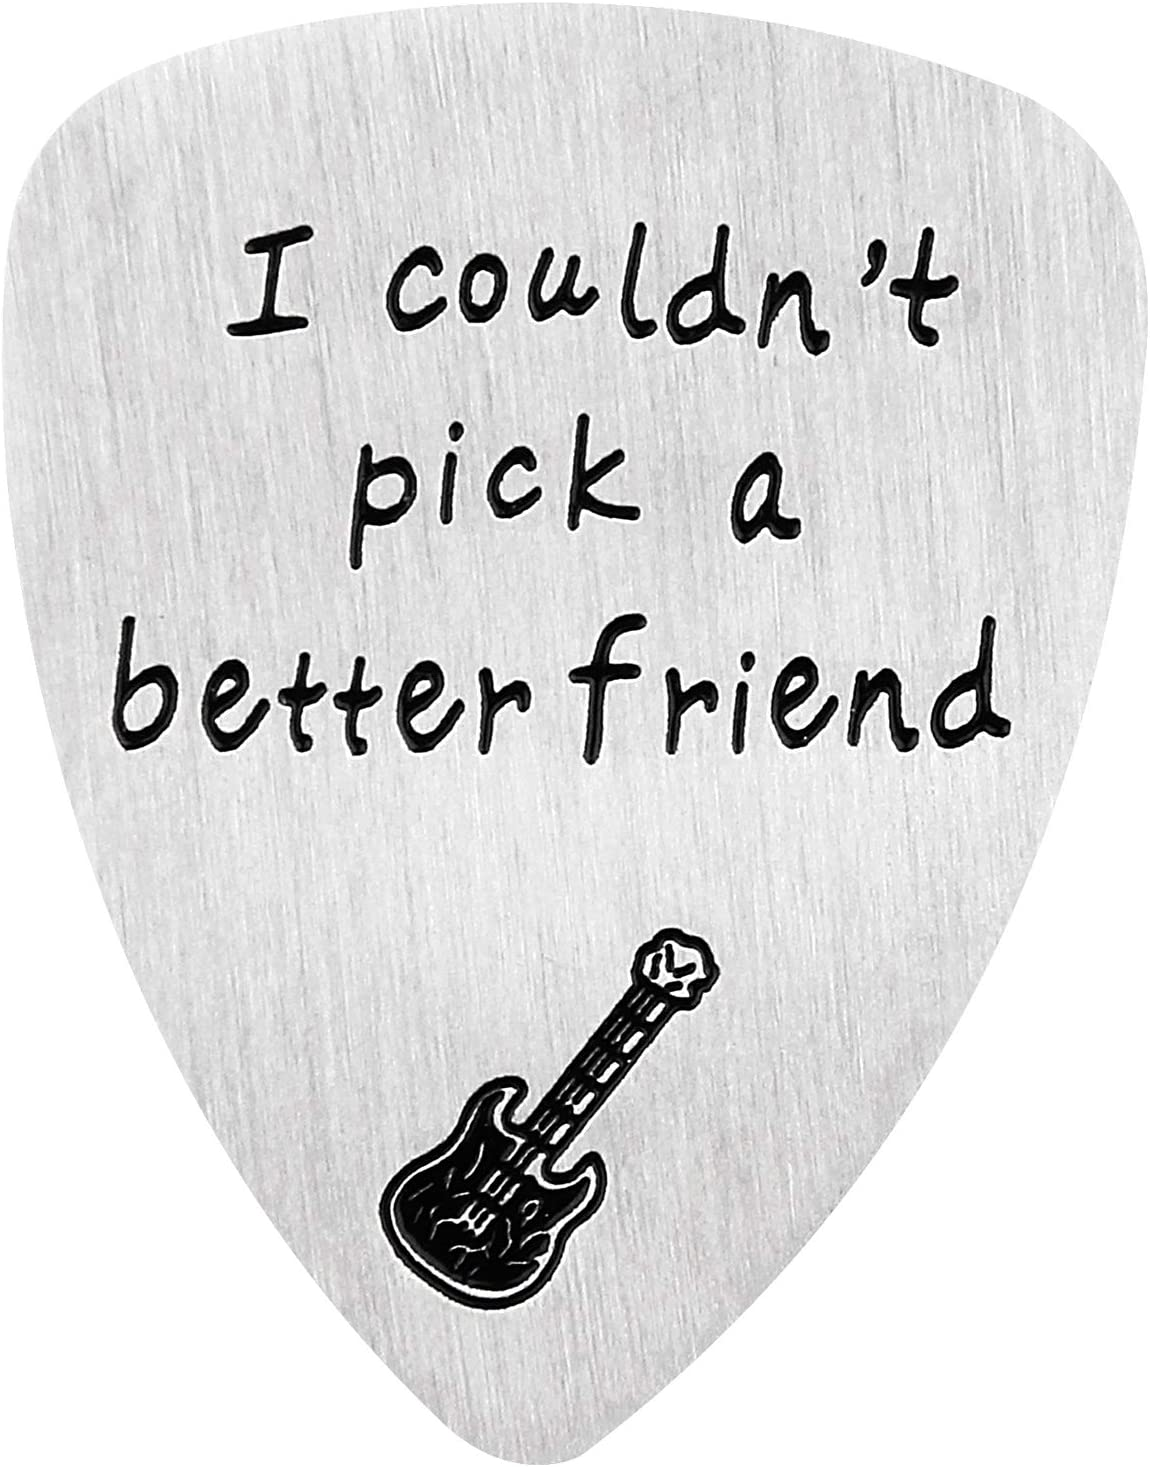 Best Friend Guitar Picks Birthday Anniversary Friendship Gifts I Could Not Pick A Better Friend